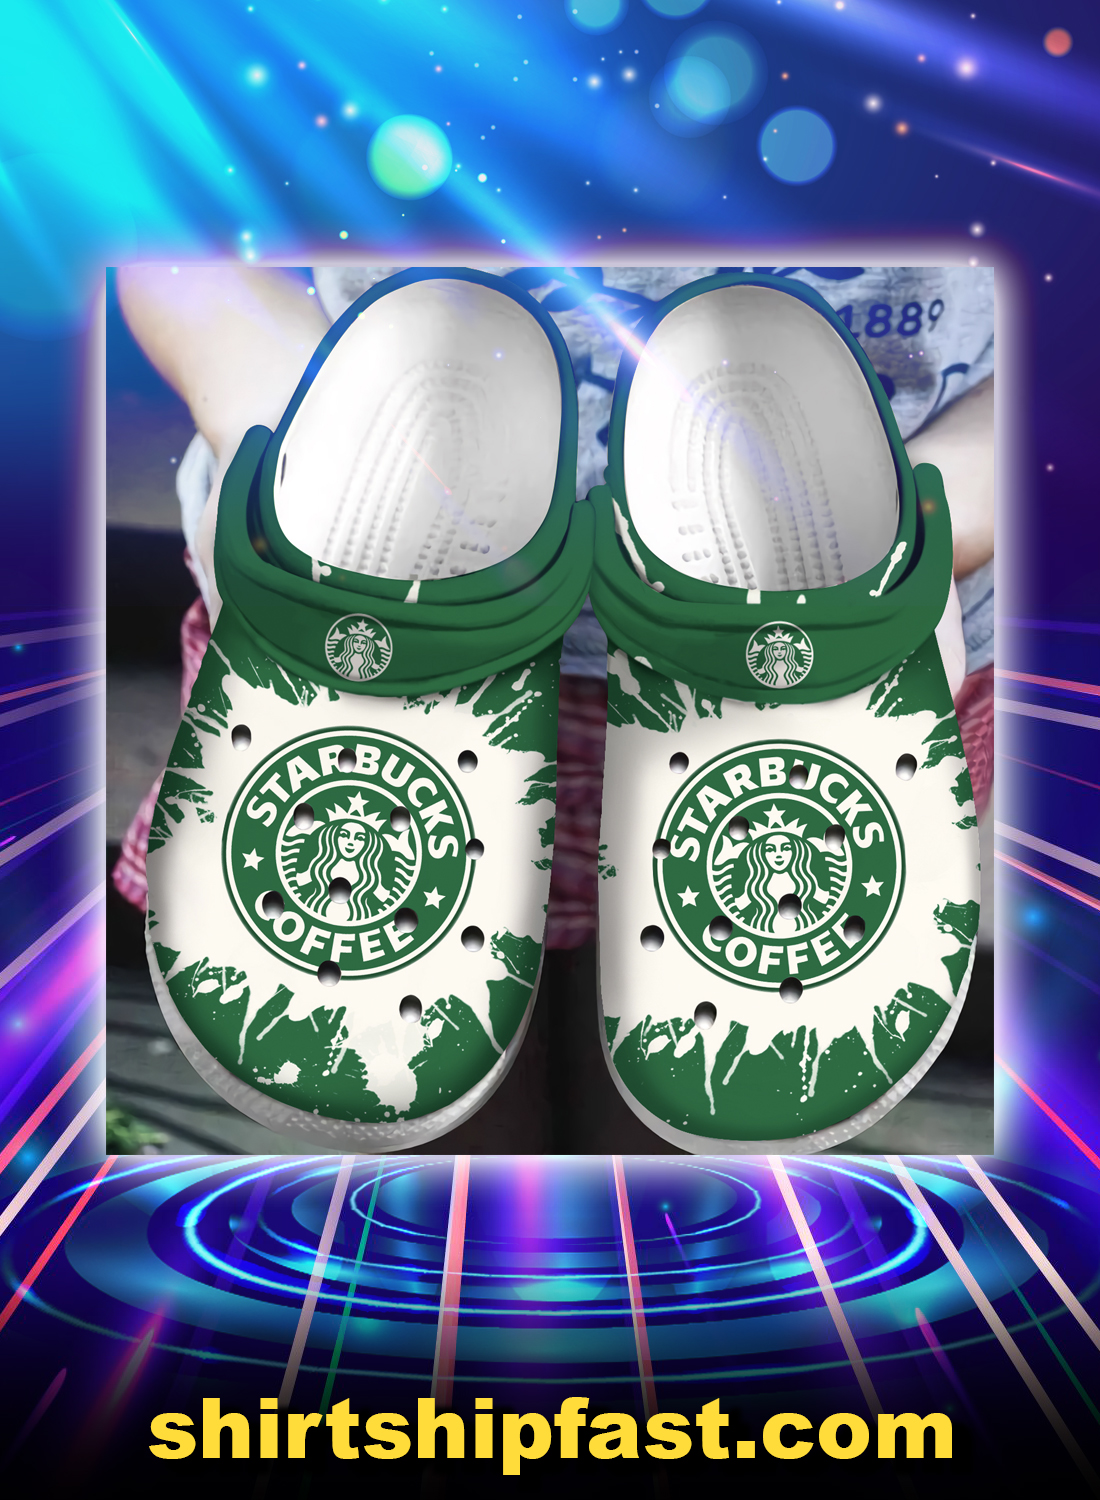 Starbucks coffee crocband crocs shoes - Picture 1